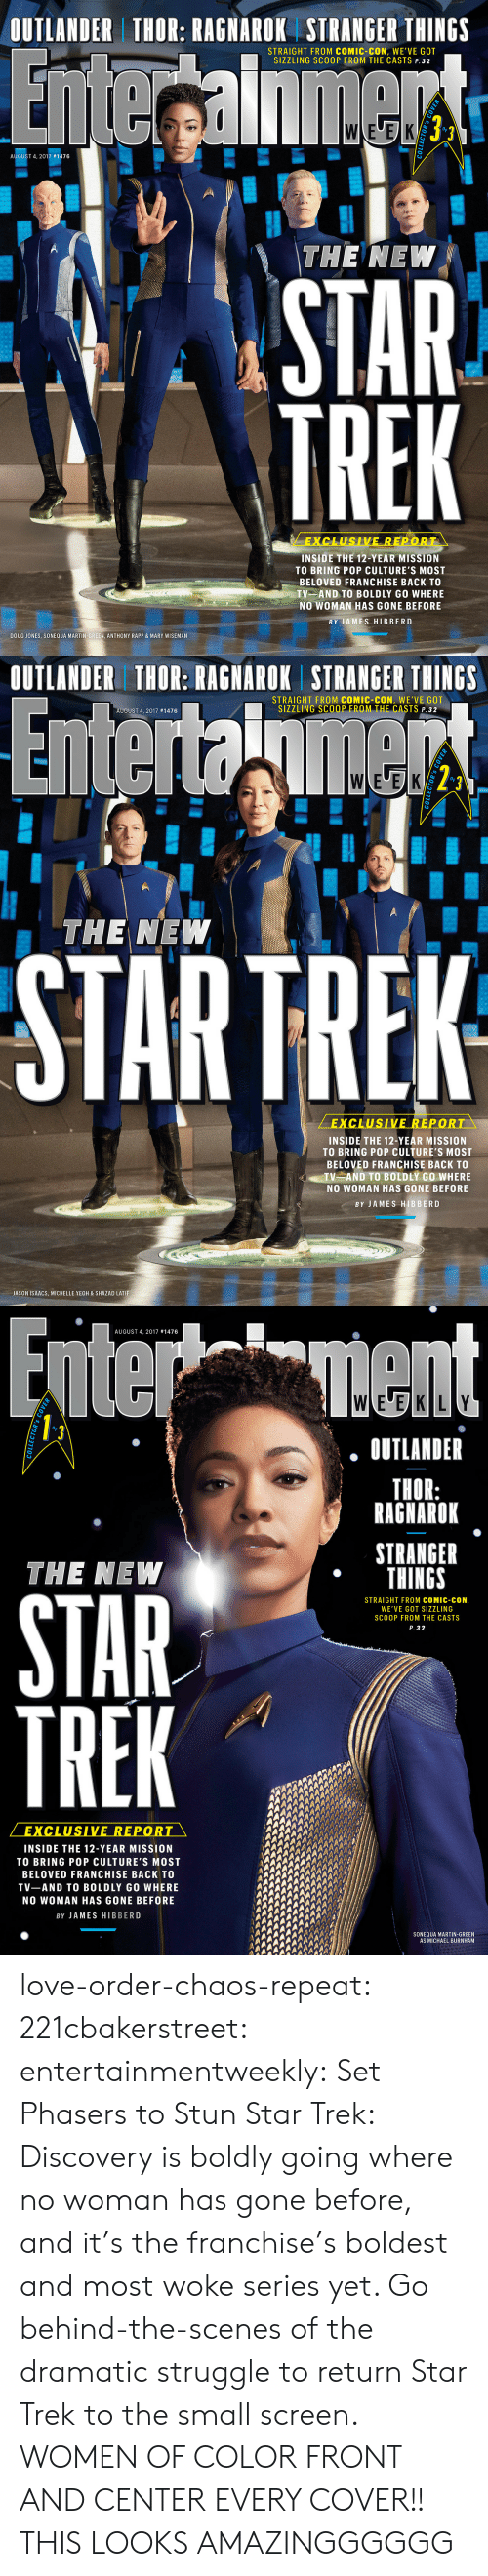 Doug, Love, and Martin: OUTLANDER THOR: RAGNAROK STRANGER THINGS  STRAIGHT FROM COMIC-CON, WE'VE GOT  SIZZLING SCOOP FROM THE CASTS P. 32  oF  AUGUST 4, 2017 #1476  THE NEW  STAR  TREK  EXCLUSIVE REPOR  INSIDE THE 12-YEAR MISSION  TO BRING POP CULTURE'S MOST  BELOVED FRANCHISE BACK TO  TV AND TO BOLDLY GO WHERE  NO WOMAN HAS GONE BEFORE  BY JAMES HIBBERD  DOUG JONES, SONEQUA MARTIN-GREEN, ANTHONY RAPP & MARY WISEMAN   OUTLANDER THOR: RAGNAROK STRANGER THINGS  STRAIGHT FROM COMIC-CON, WE'VE GOT  SIZZLING SCOOP FROM THE CASTS P. 32  AUGUST 4, 2017 #1476  WLEUEK  2^  0  THE NEW  STARTREK  EXCLUSIVE REPORT  INSIDE THE 12-YEAR MISSION  TO BRING POP CULTURE'S MOST  BELOVED FRANCHISE BACK TO  TV AND TO BOLDLY GO WHERE  NO WOMAN HAS GONE BEFORE  BY JAMES HIBBERD  JASON ISAACS, MICHELLE YEOH & SHAZAD LATIE   AUGUST 4, 2017 #1476  0  OUTLANDER  THOR:  RAGNAROK  STRANGER  THINGS  THE NEW  8  STRAIGHT FROM COMIC-CON,  WE'VE GOT SIZZLING  SCOOP FROM THE CASTS  P. 32  STAR  VE REPOR  INSIDE THE 12-YEAR MISSION  TO BRING POP CULTURE'S MOST  BELOVED FRANCHISE BACK TO  TV-AND TO BOLDLY GO WHERE  NO WOMAN HAS GONE BEFORE  BY JAMES HIBBERD  SONEQUA MARTIN-GREEN  AS MICHAEL BURNHAM  5 love-order-chaos-repeat: 221cbakerstreet:  entertainmentweekly:  Set Phasers to Stun Star Trek: Discovery is boldly going where no woman has gone before, and it's the franchise's boldest and most woke series yet. Go behind-the-scenes of the dramatic struggle to return Star Trek to the small screen.  WOMEN OF COLOR FRONT AND CENTER EVERY COVER!!  THIS LOOKS AMAZINGGGGGG